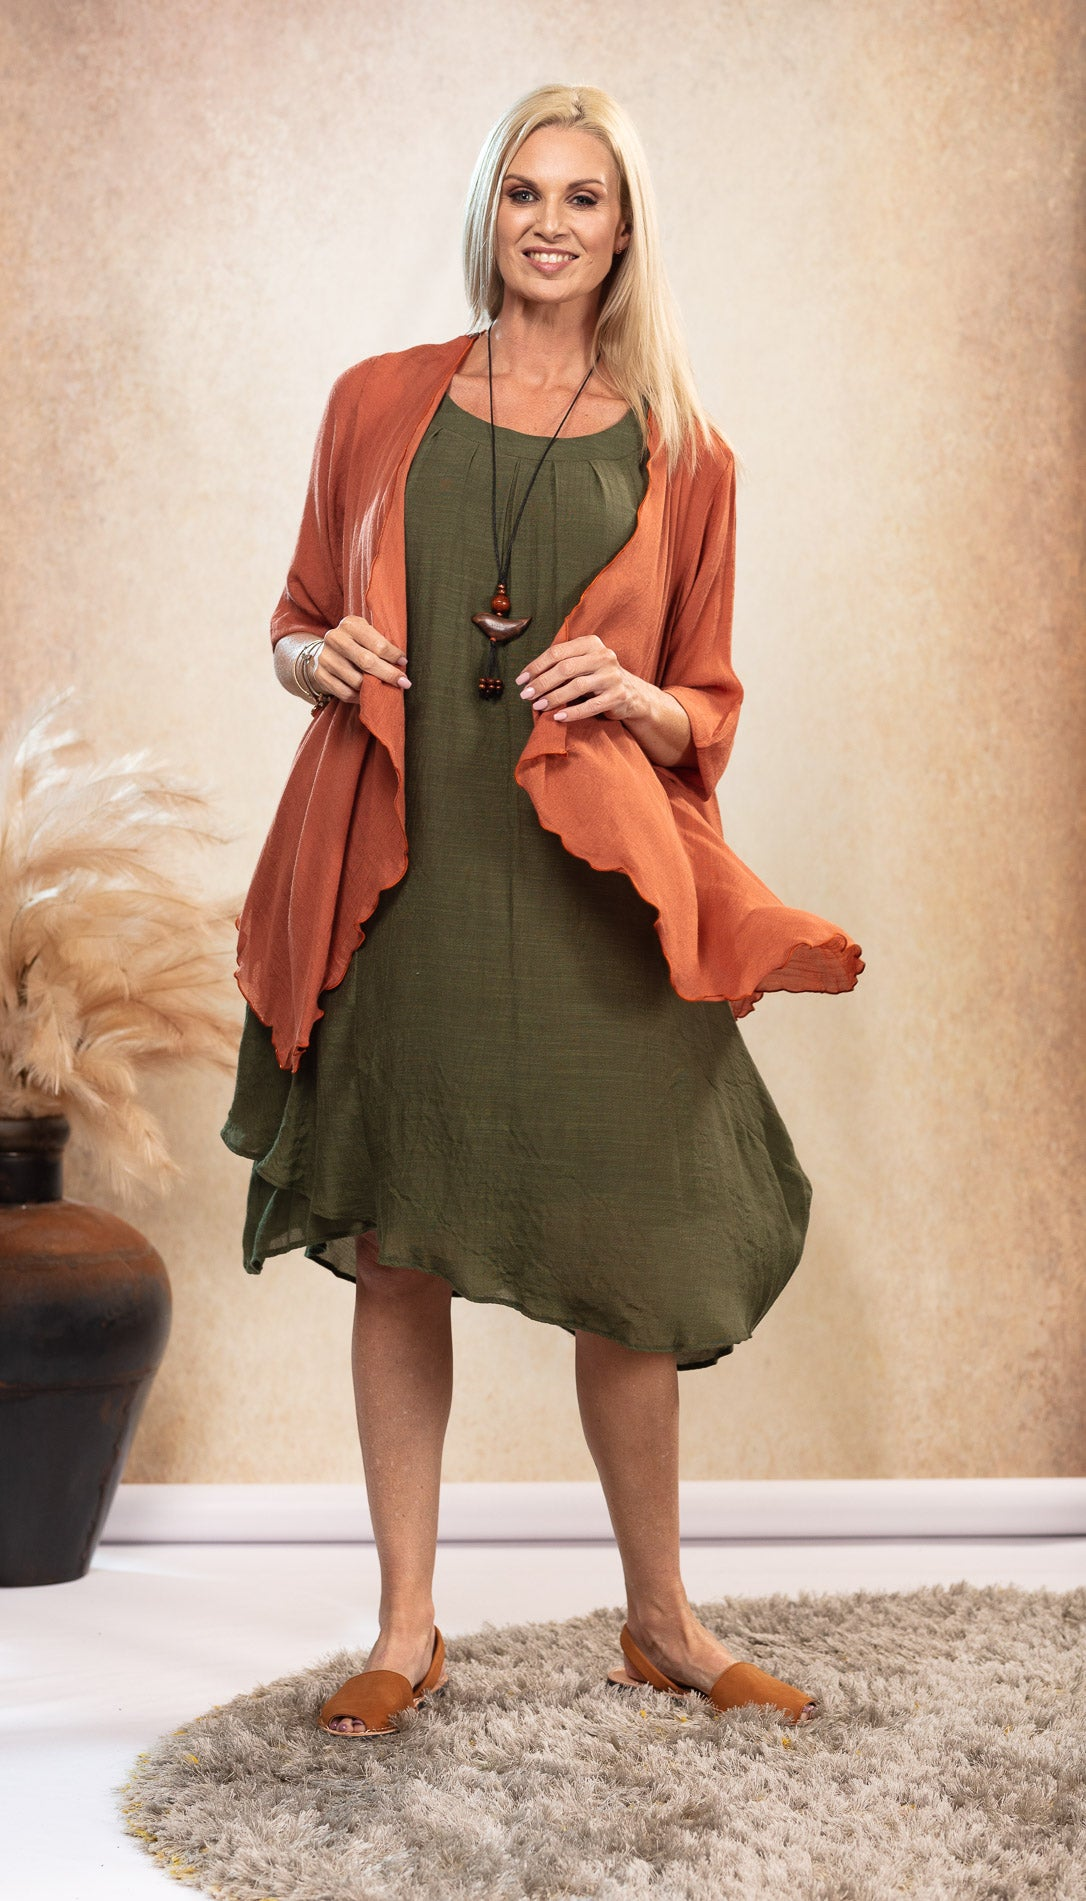 Bamboo Dress in Olive Khaki Green. Black and Taupe Avarca Sandals. Infinity Top Jacket Rust Orange.